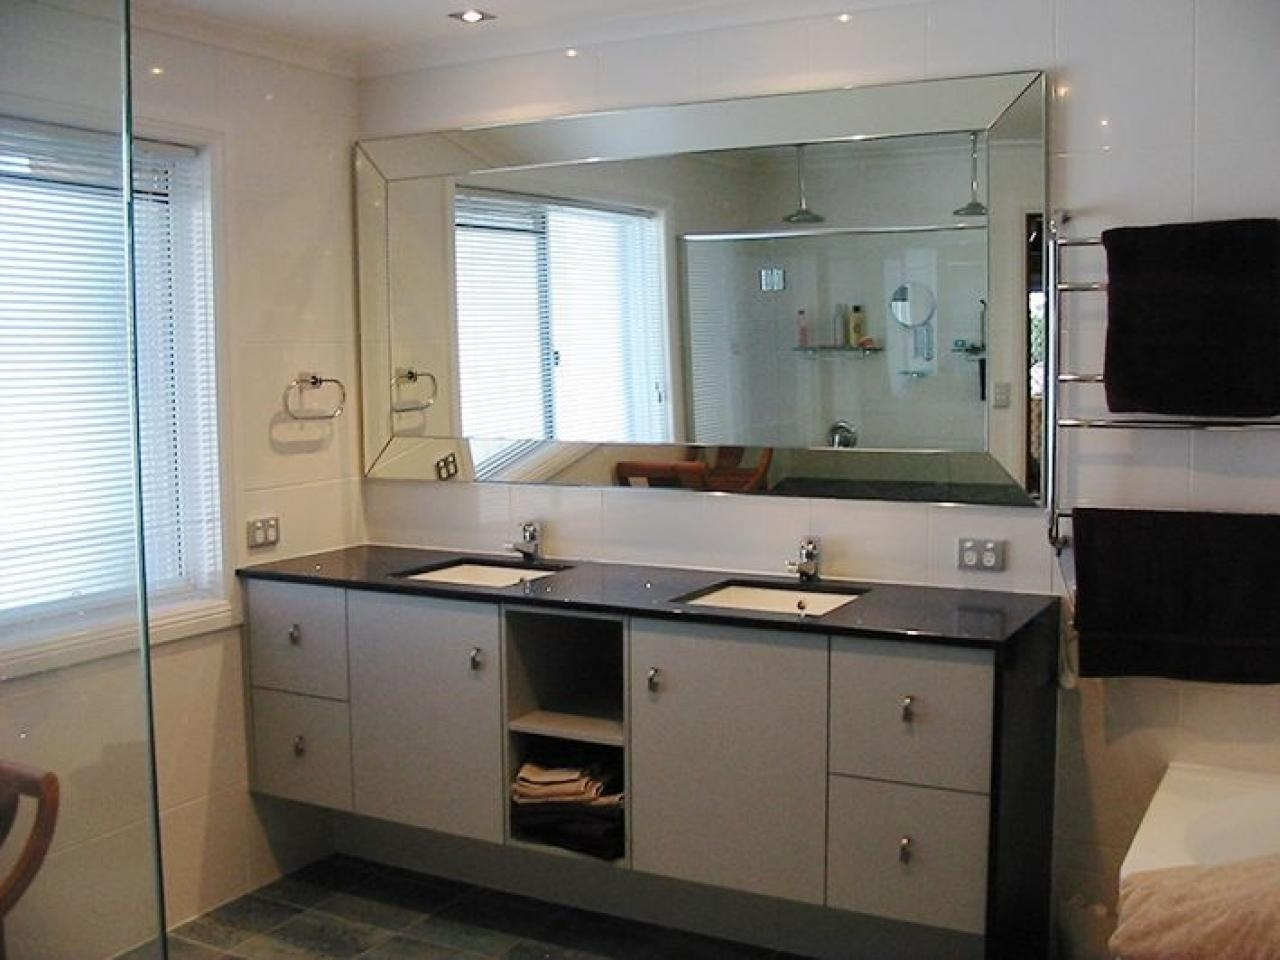 Charming Large Beveled Bathroom Mirrors Frameless With Modern Throughout Frameless Beveled Bathroom Mirrors (Image 9 of 20)